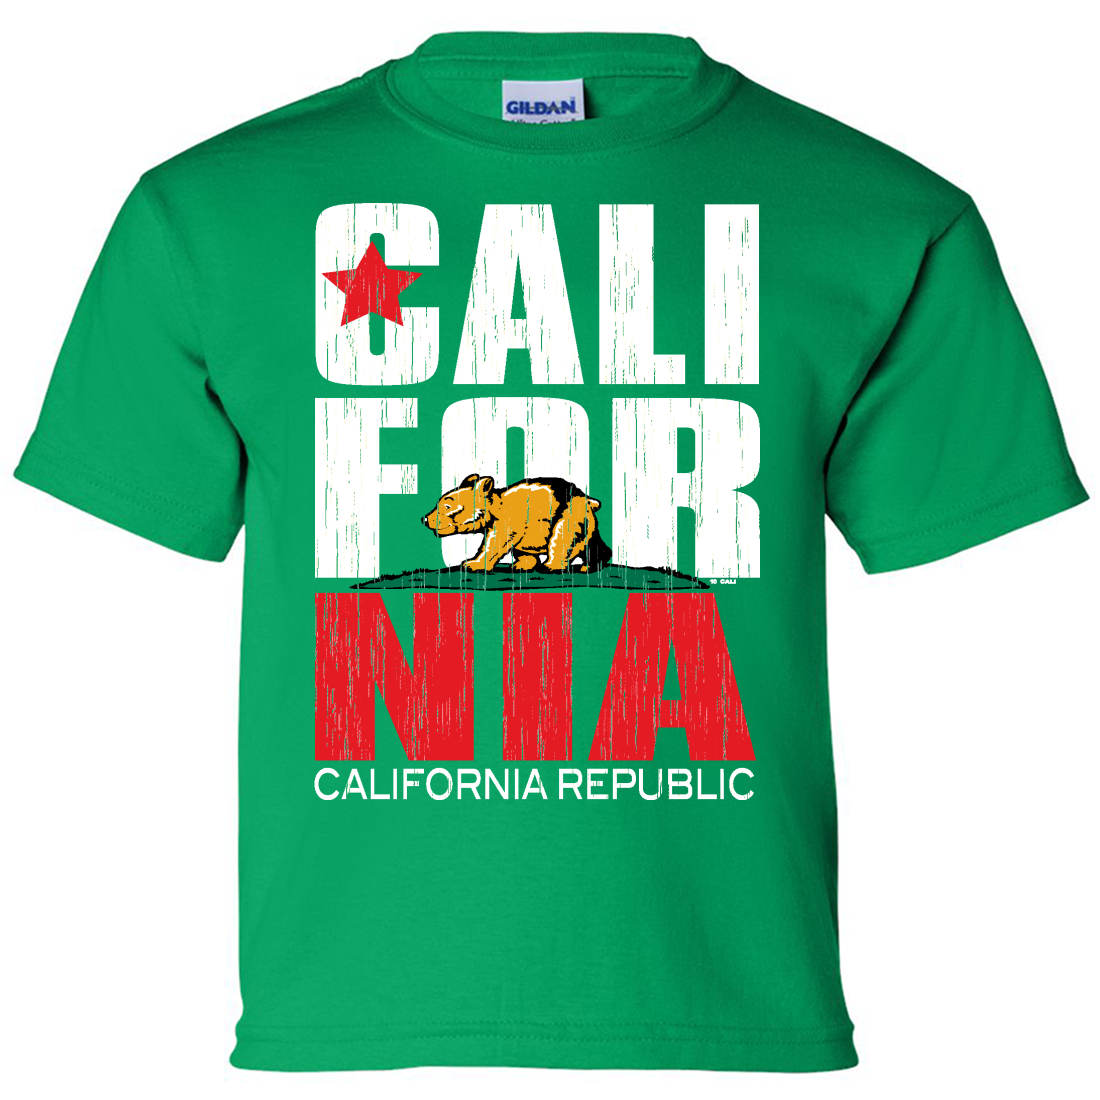 Vintage California T Shirts 64